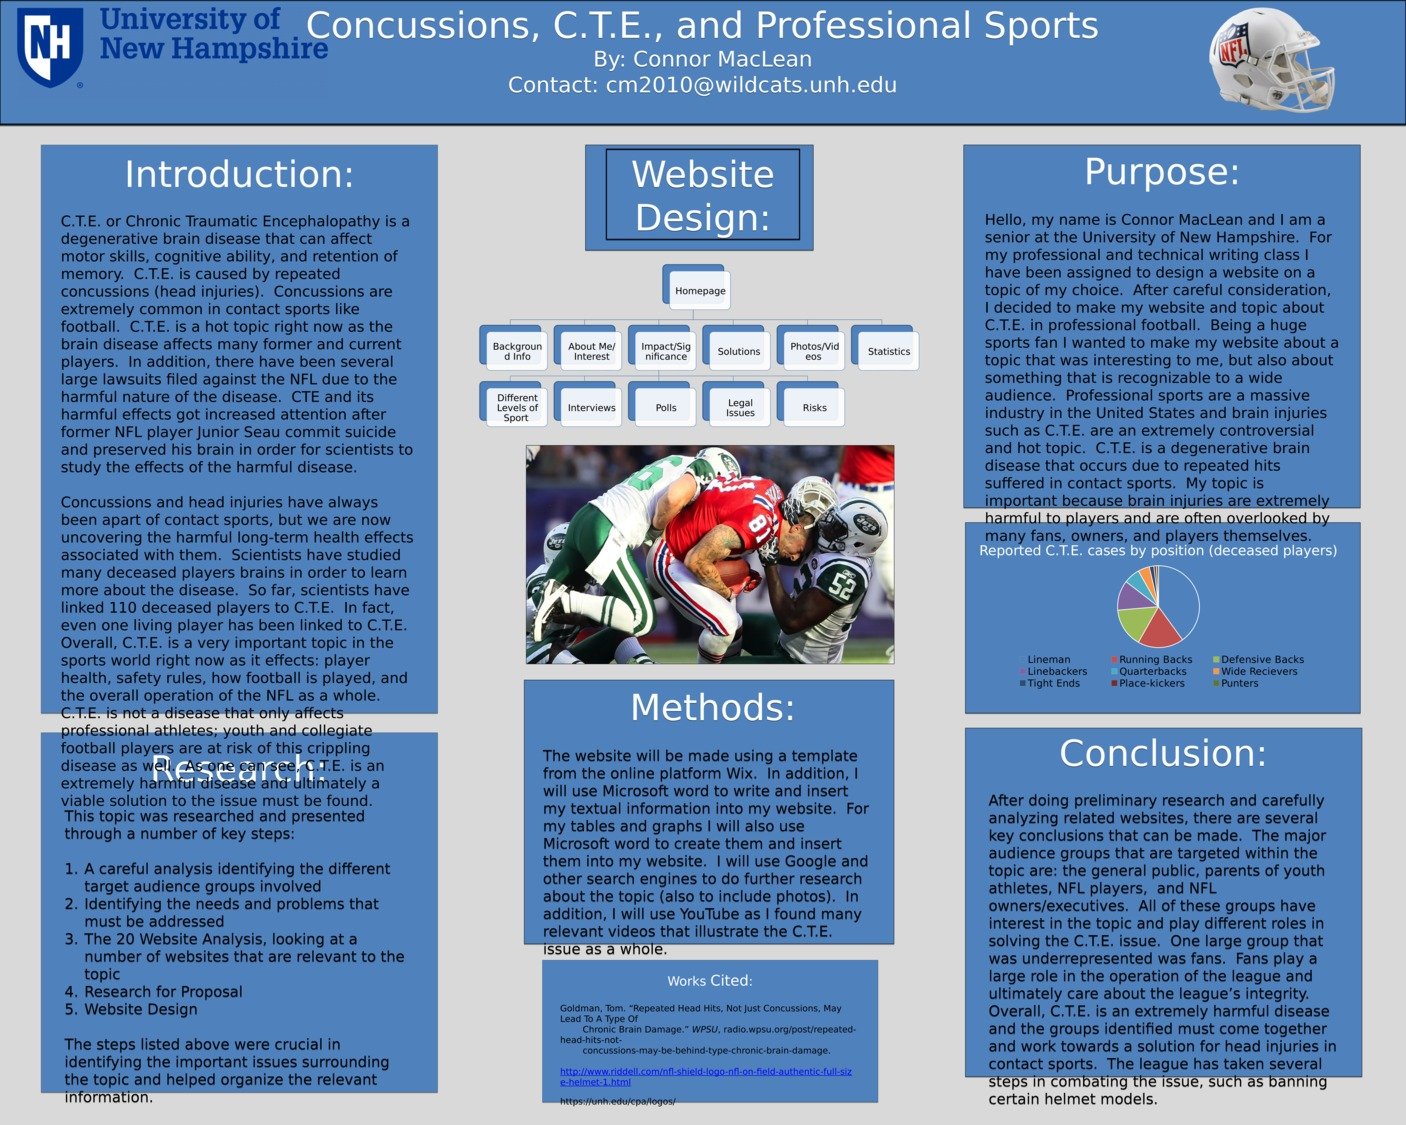 Concussions, C.T.E., And Professional Sports by cm2010